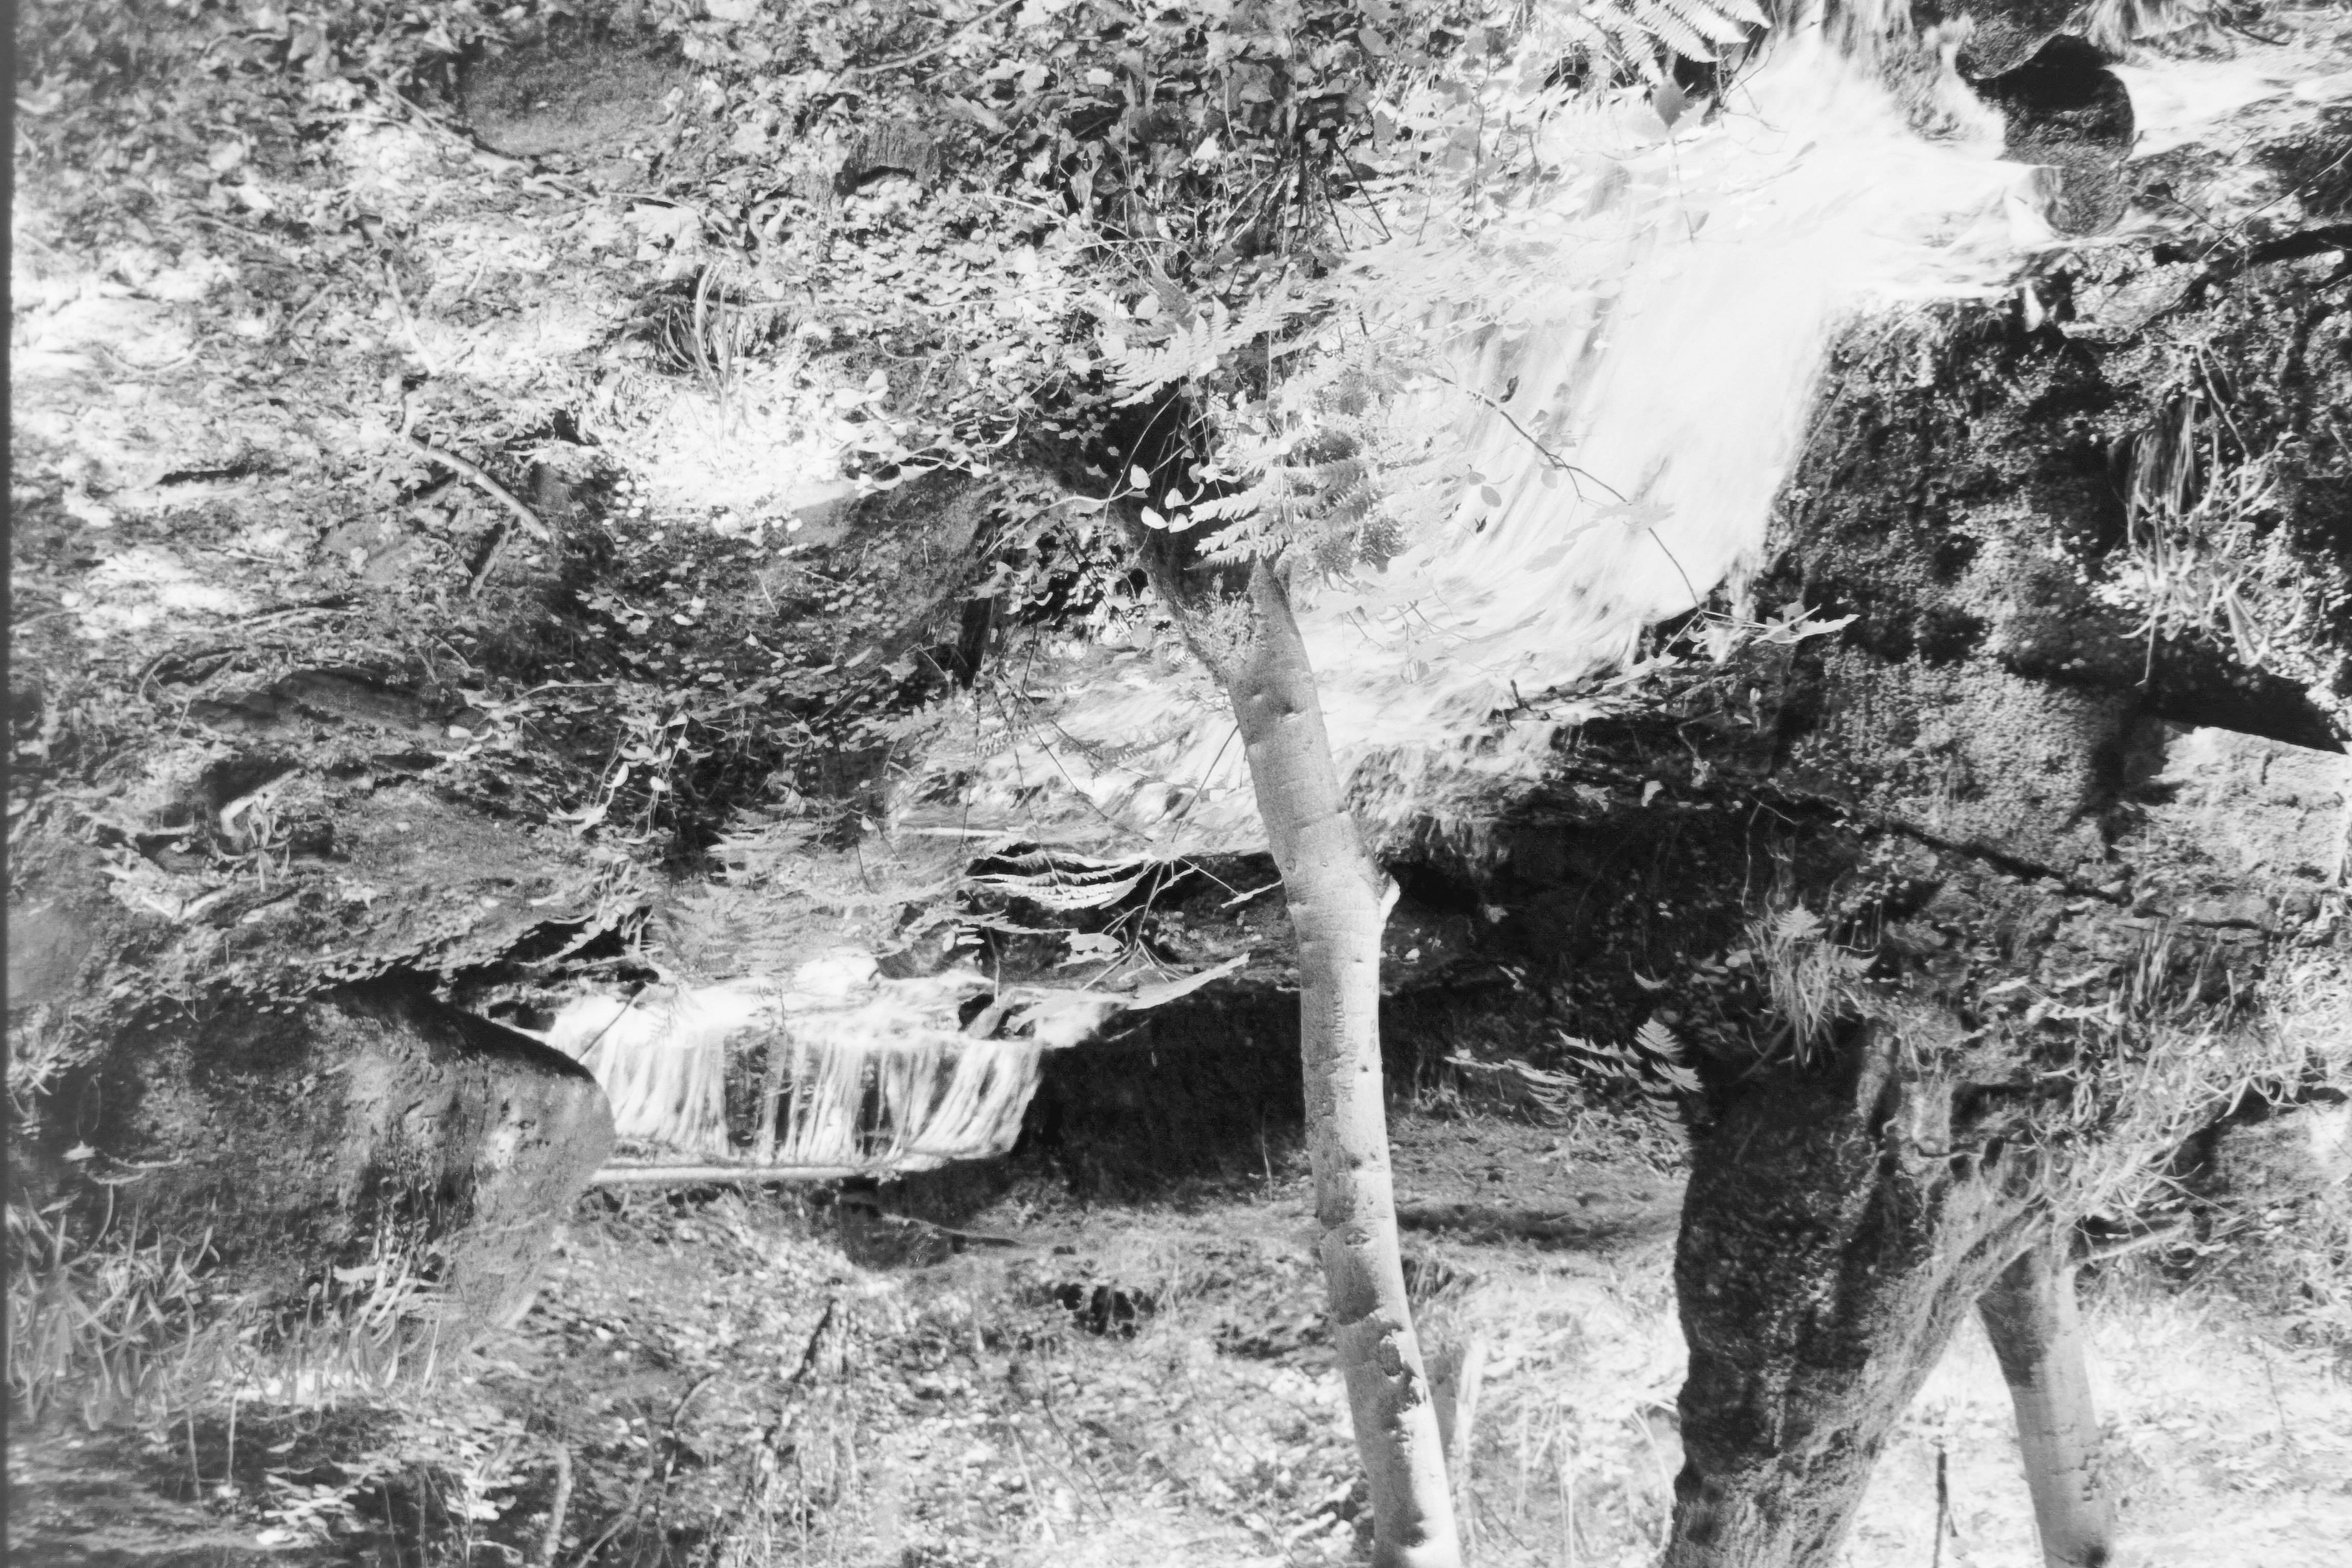 a badly exposed photo of a waterfall in the loxley valley